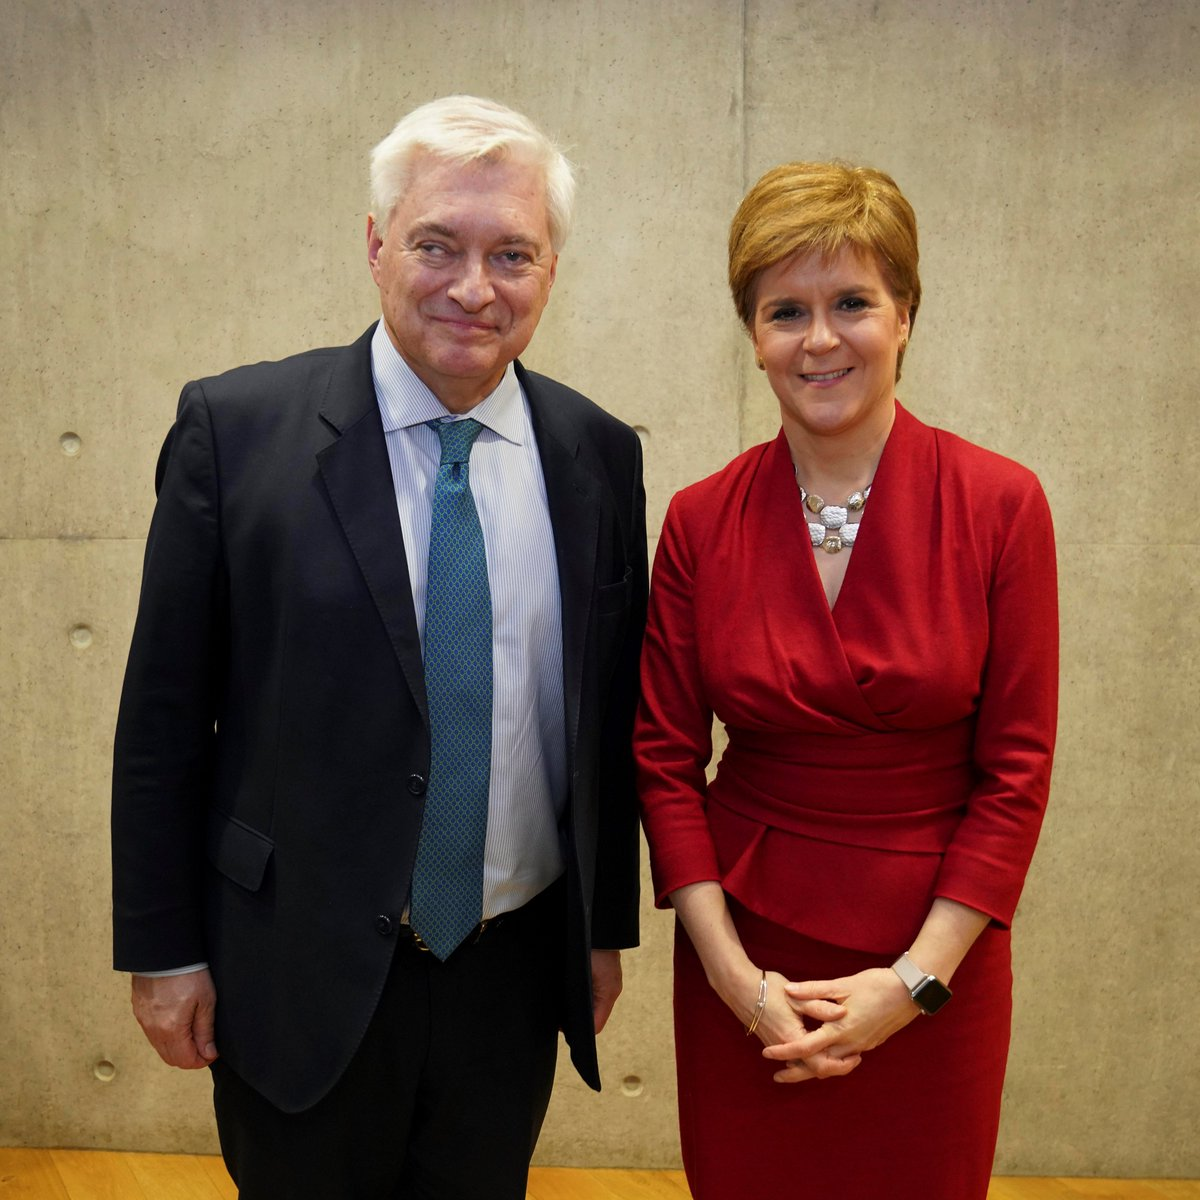 FM @NicolaSturgeon also welcomed @Wegger_Strommen to @scotparl today. Norway is an important partner for Scotland. @scotgov will continue to work closely on future opportunities with the Embassy and Norwegian Government 🇳🇴🏴 @NorwayinUK